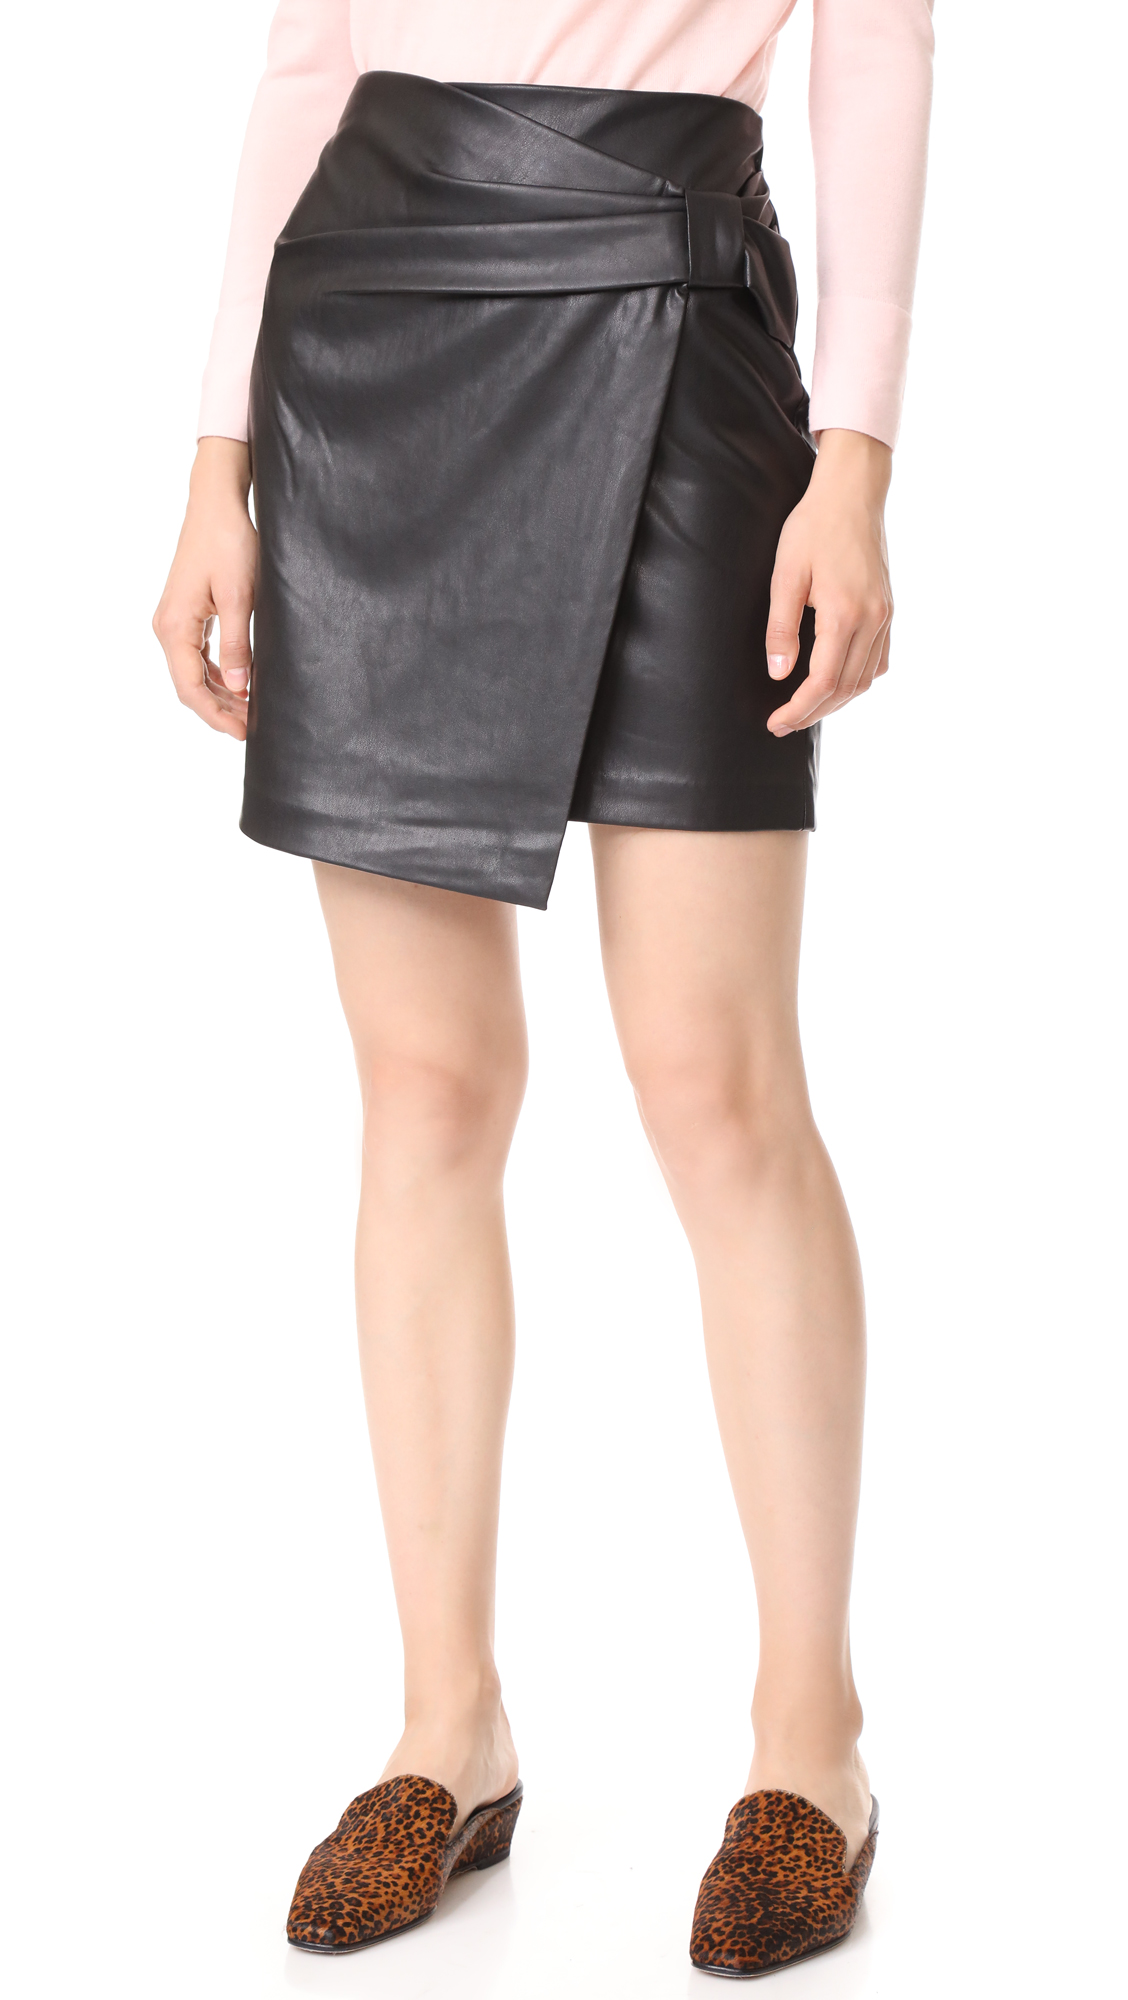 Club Monaco Chavelle Skirt - Black